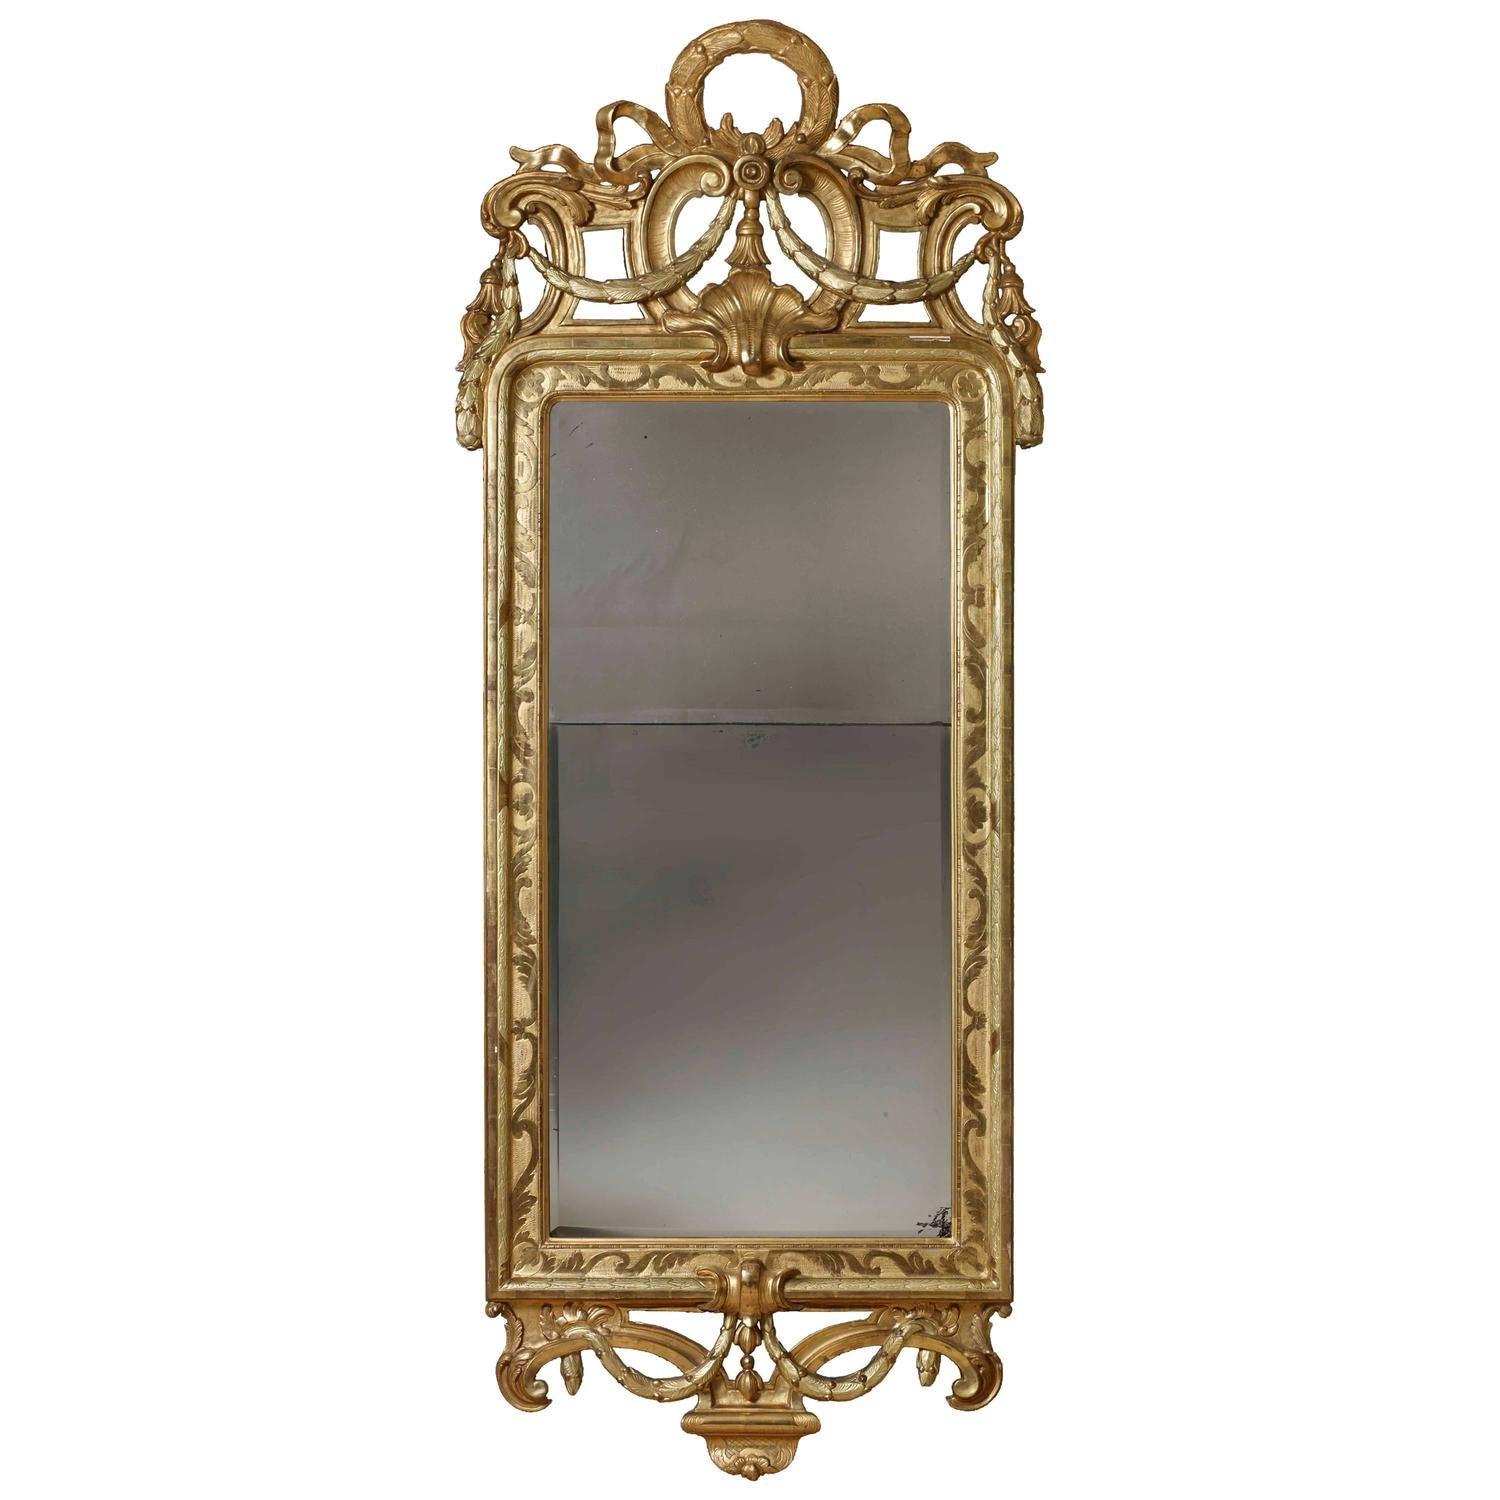 Living Room Mirrors - Find What You Love | Serena and Lily.